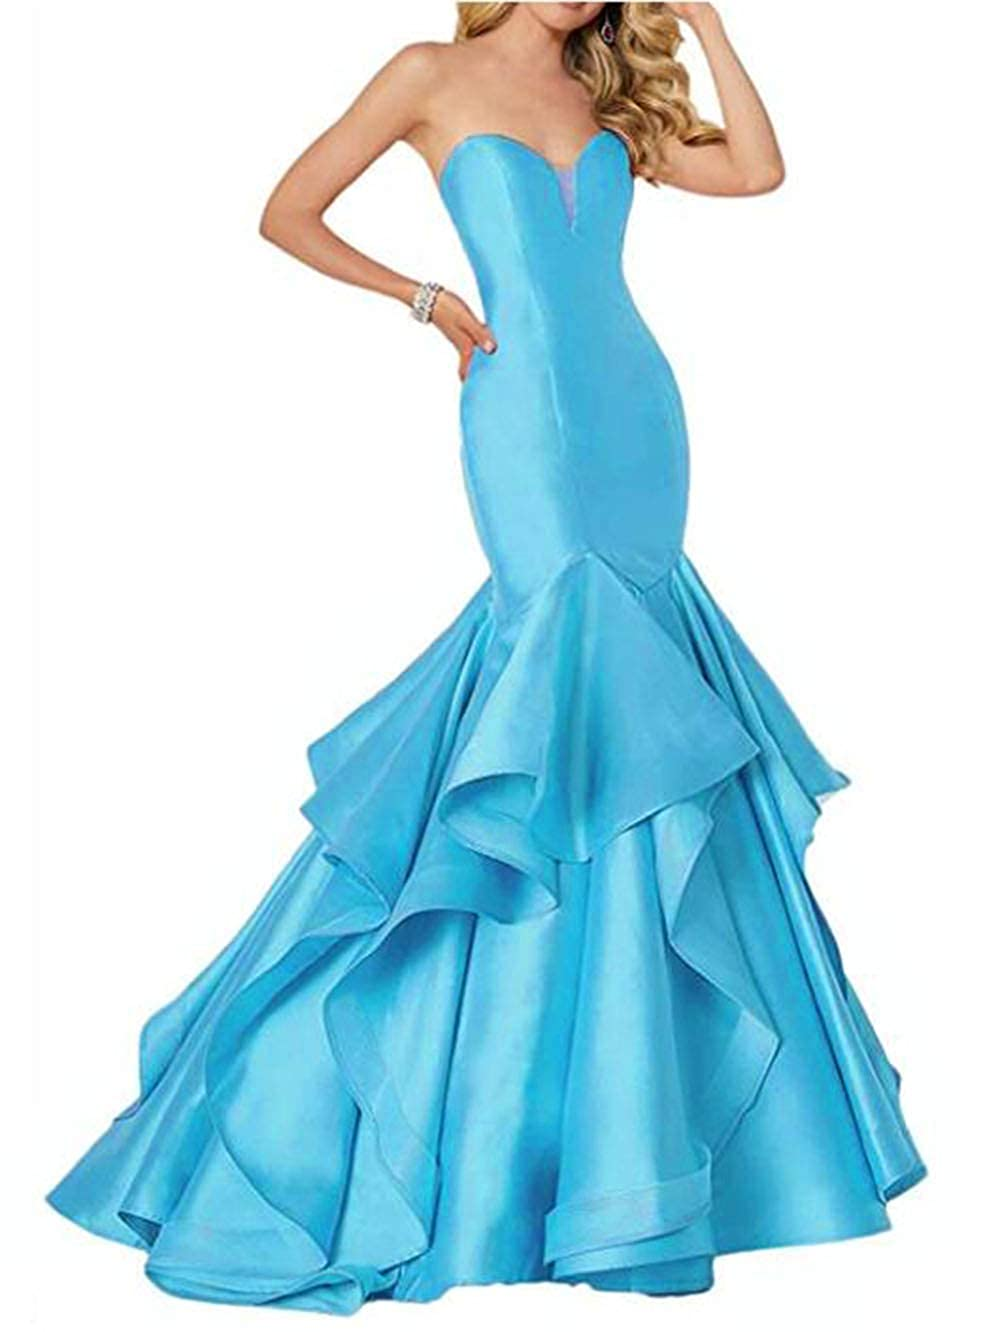 bluee alilith.Z Sexy Sweetheart Prom Dresses Mermaid Tired Satin Train Formal Evening Dresses Party Gowns for Women 2019